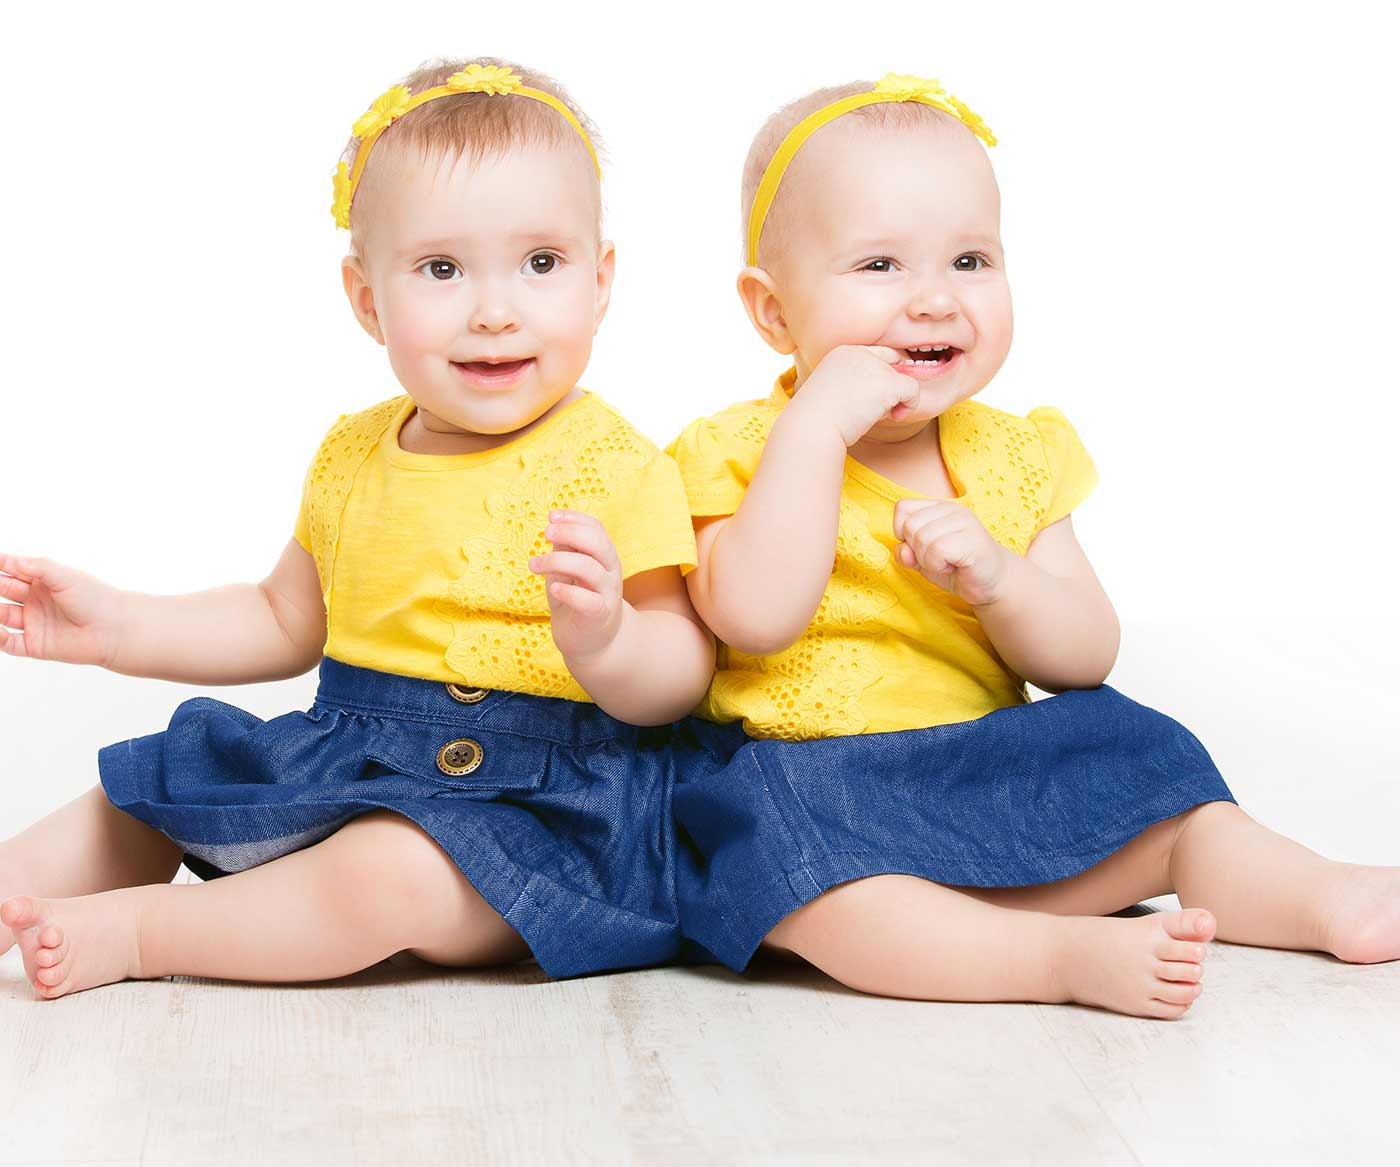 twin girls sitting and smiling: how to avoid excluding your non twin child